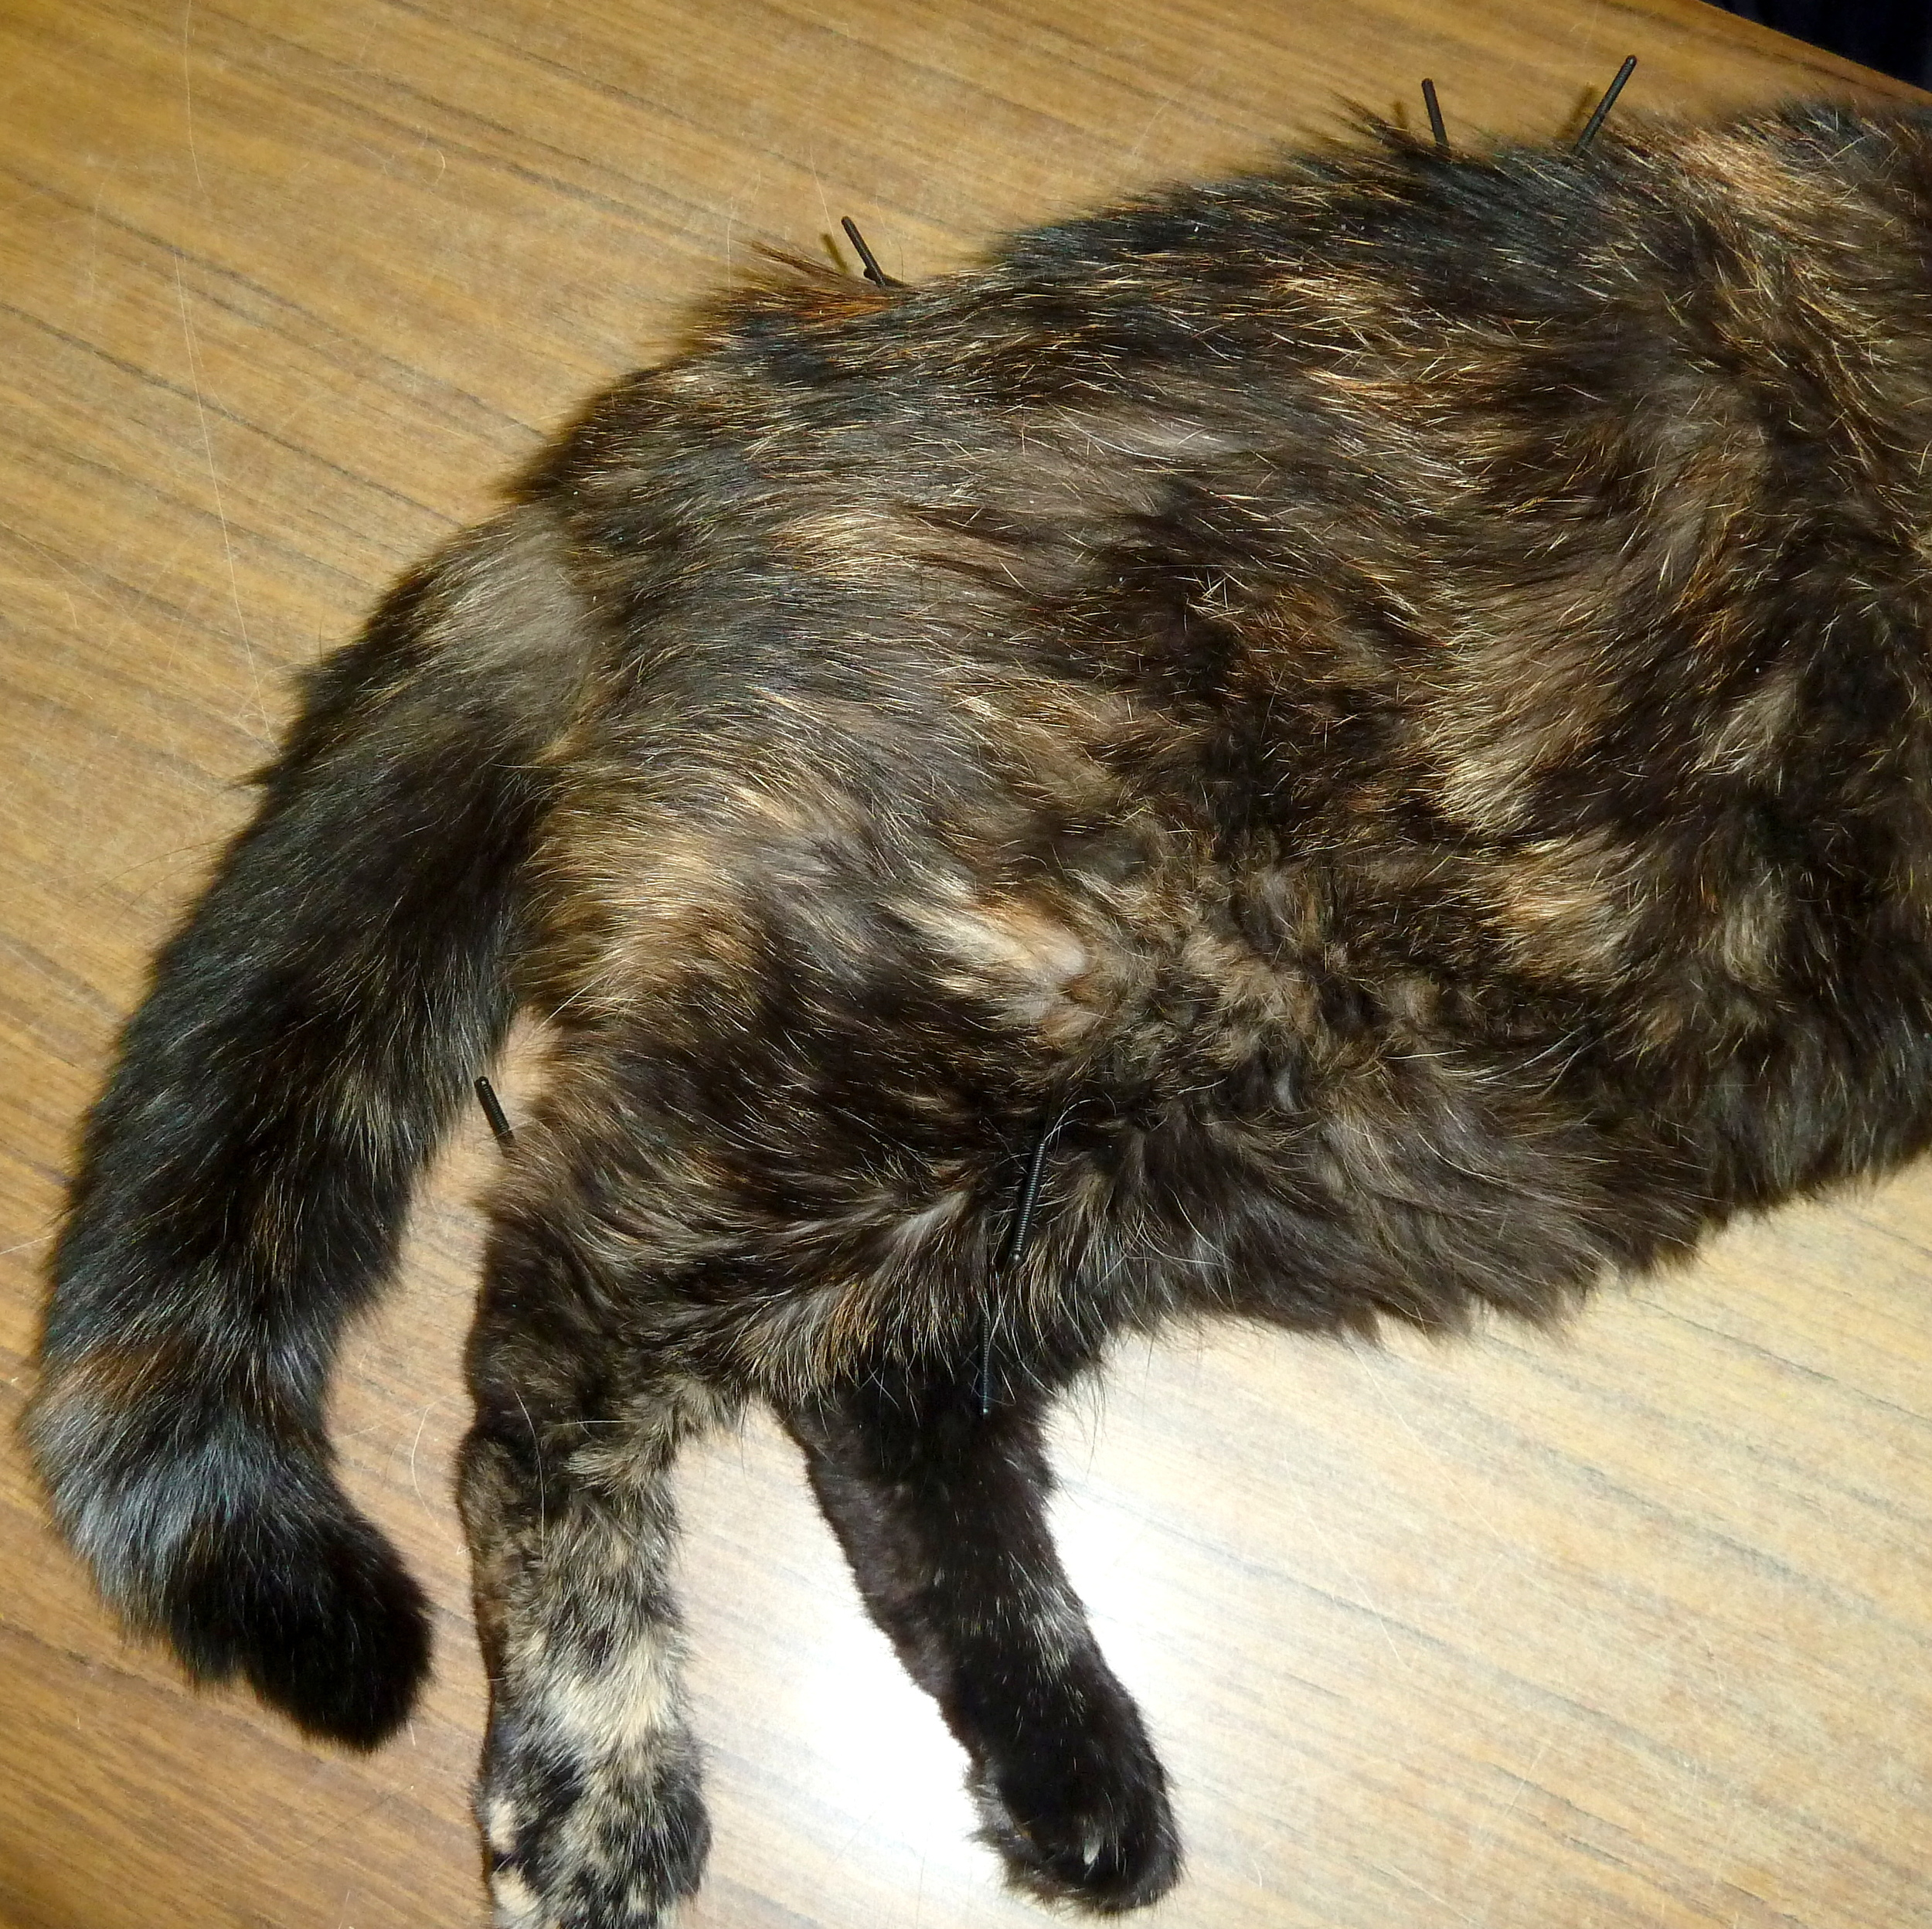 Murphy did not like being at the veterinary clinic. She would hiss and protest. After her second session, she was an acupuncture addict, often remaining still for the full 10 minutes of needle placement.